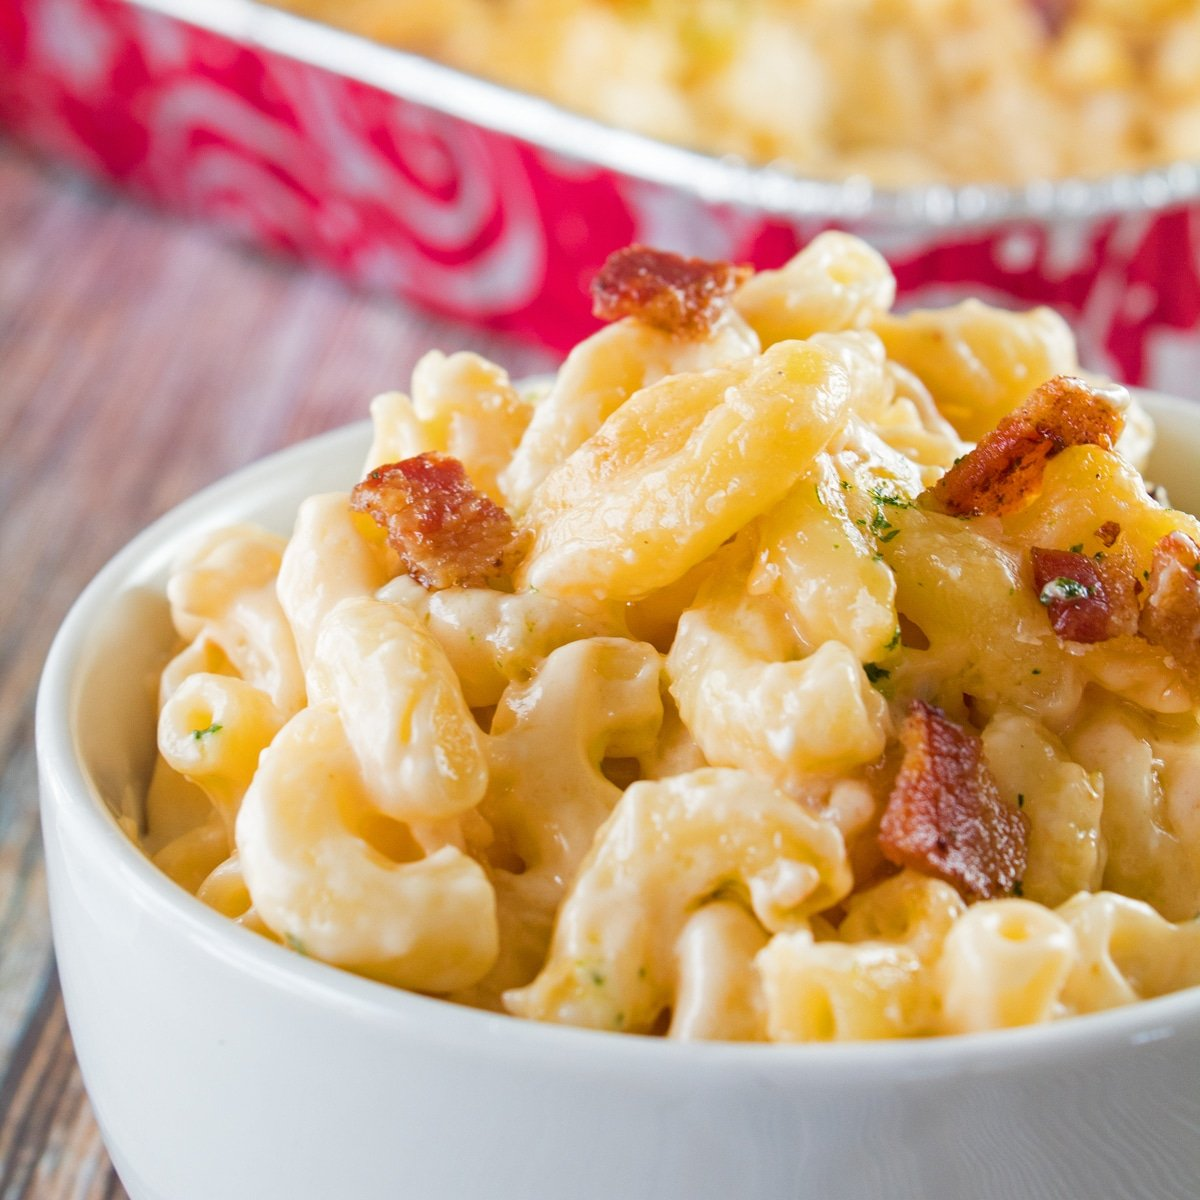 Portioned serving of smoked mac and cheese in a white bowl with the aluminum baking tray in the background.